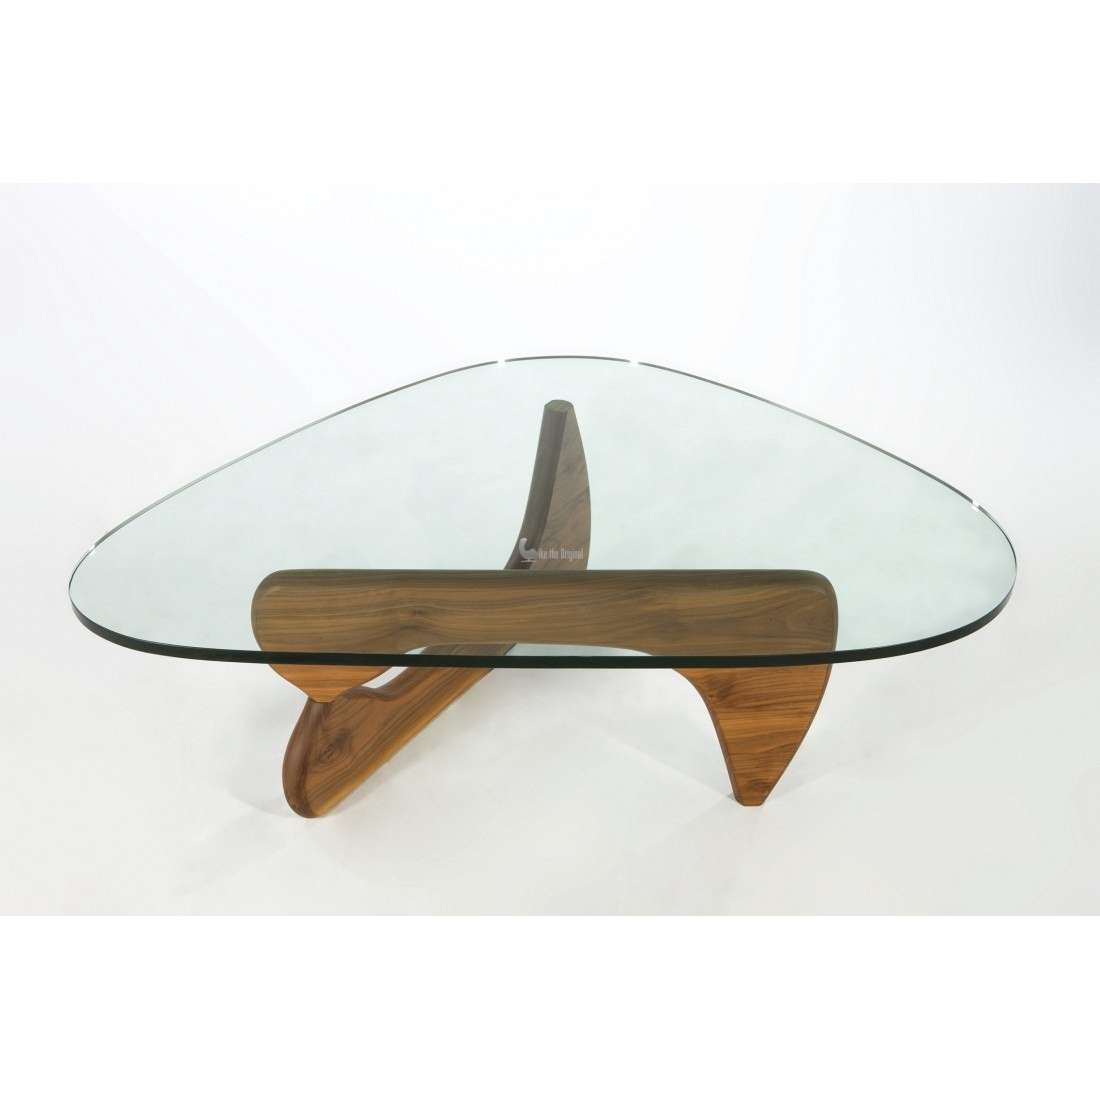 Glass Coffee Table Small Space Modern Wood Tablemetal Mid Century Intended For Most Popular Unique Glass Coffee Tables (View 6 of 20)